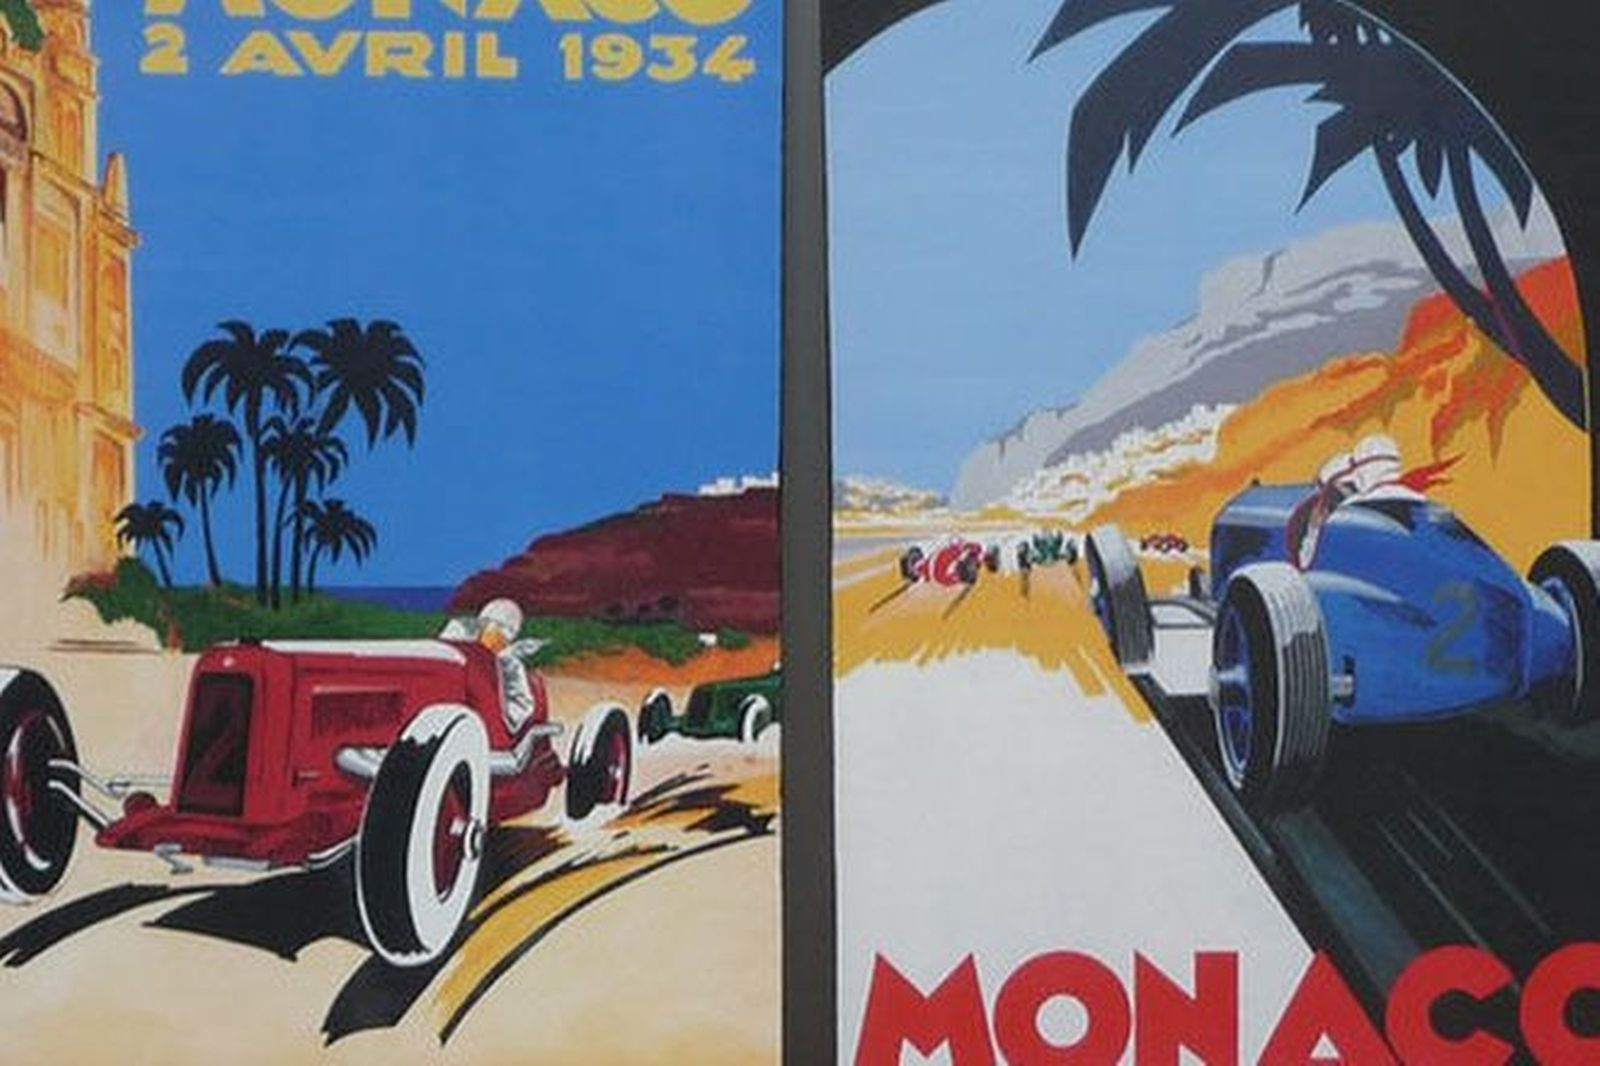 Prints x2 - Monaco Hand Painted Copies of Original Posters (approx. 61cm x 54cm)